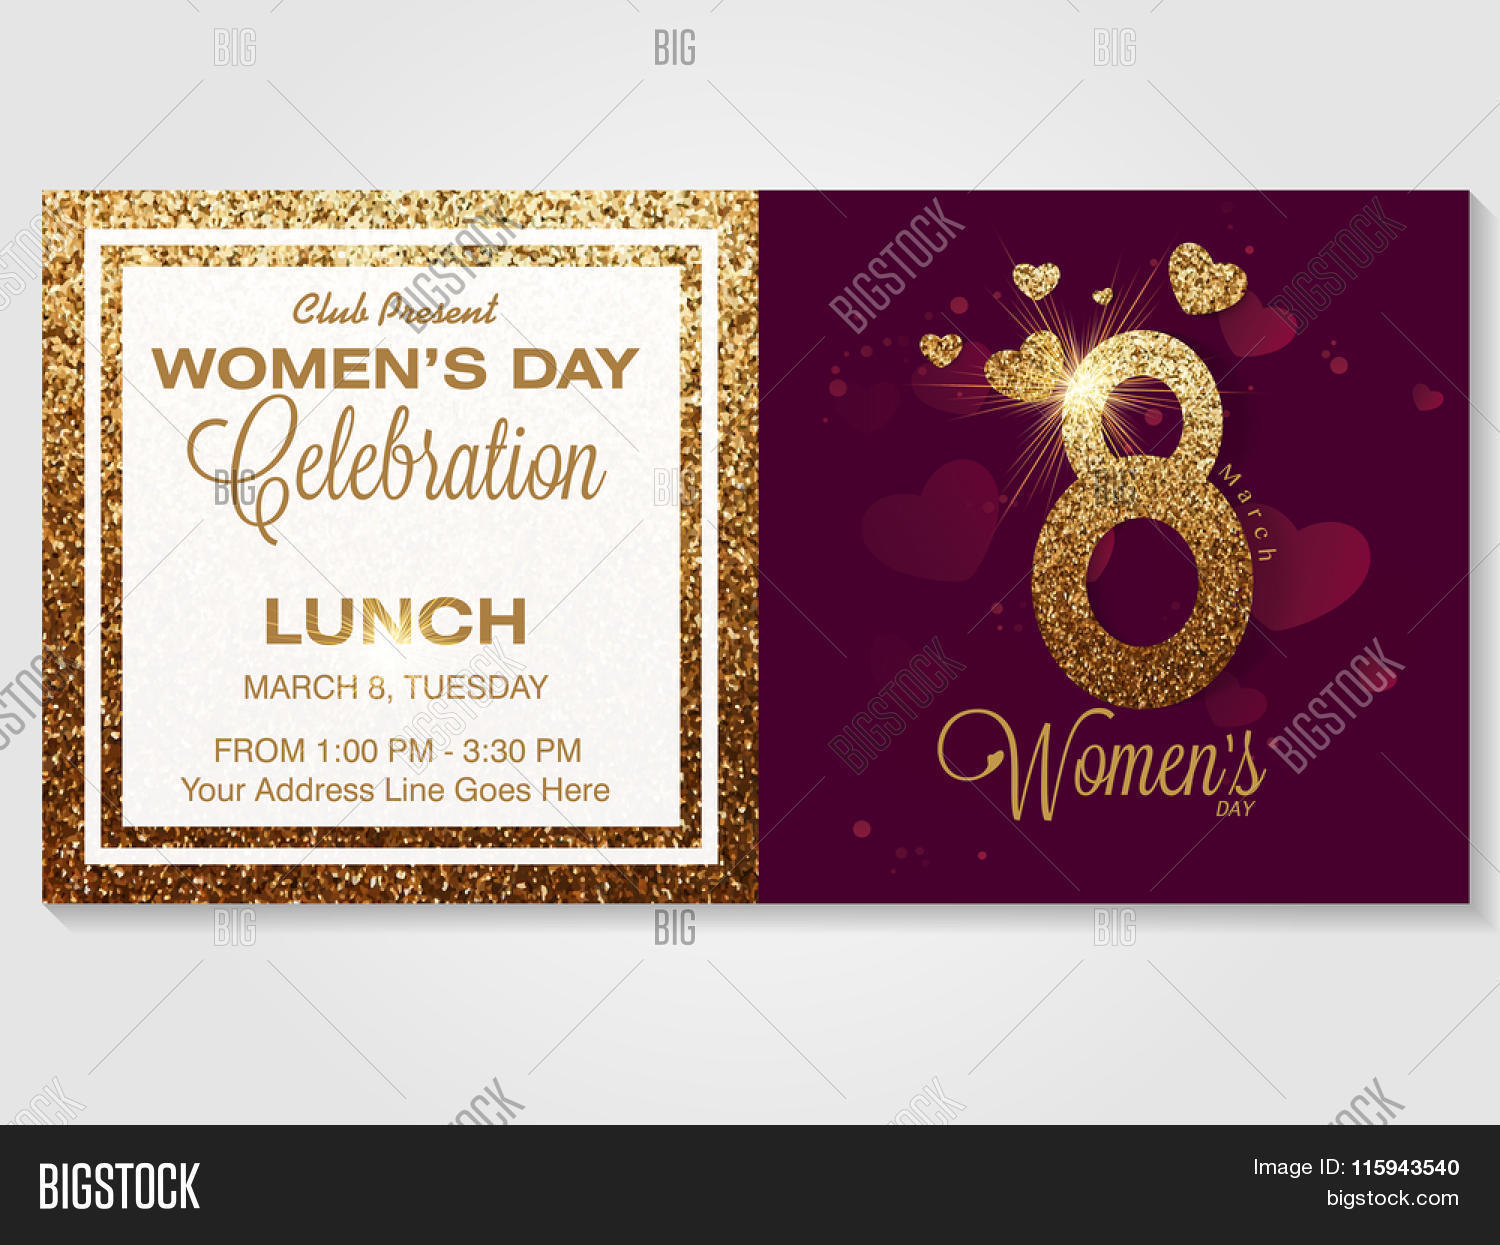 Elegant invitation vector photo free trial bigstock elegant invitation card design with creative golden text 8 march for happy womens day celebration stopboris Image collections